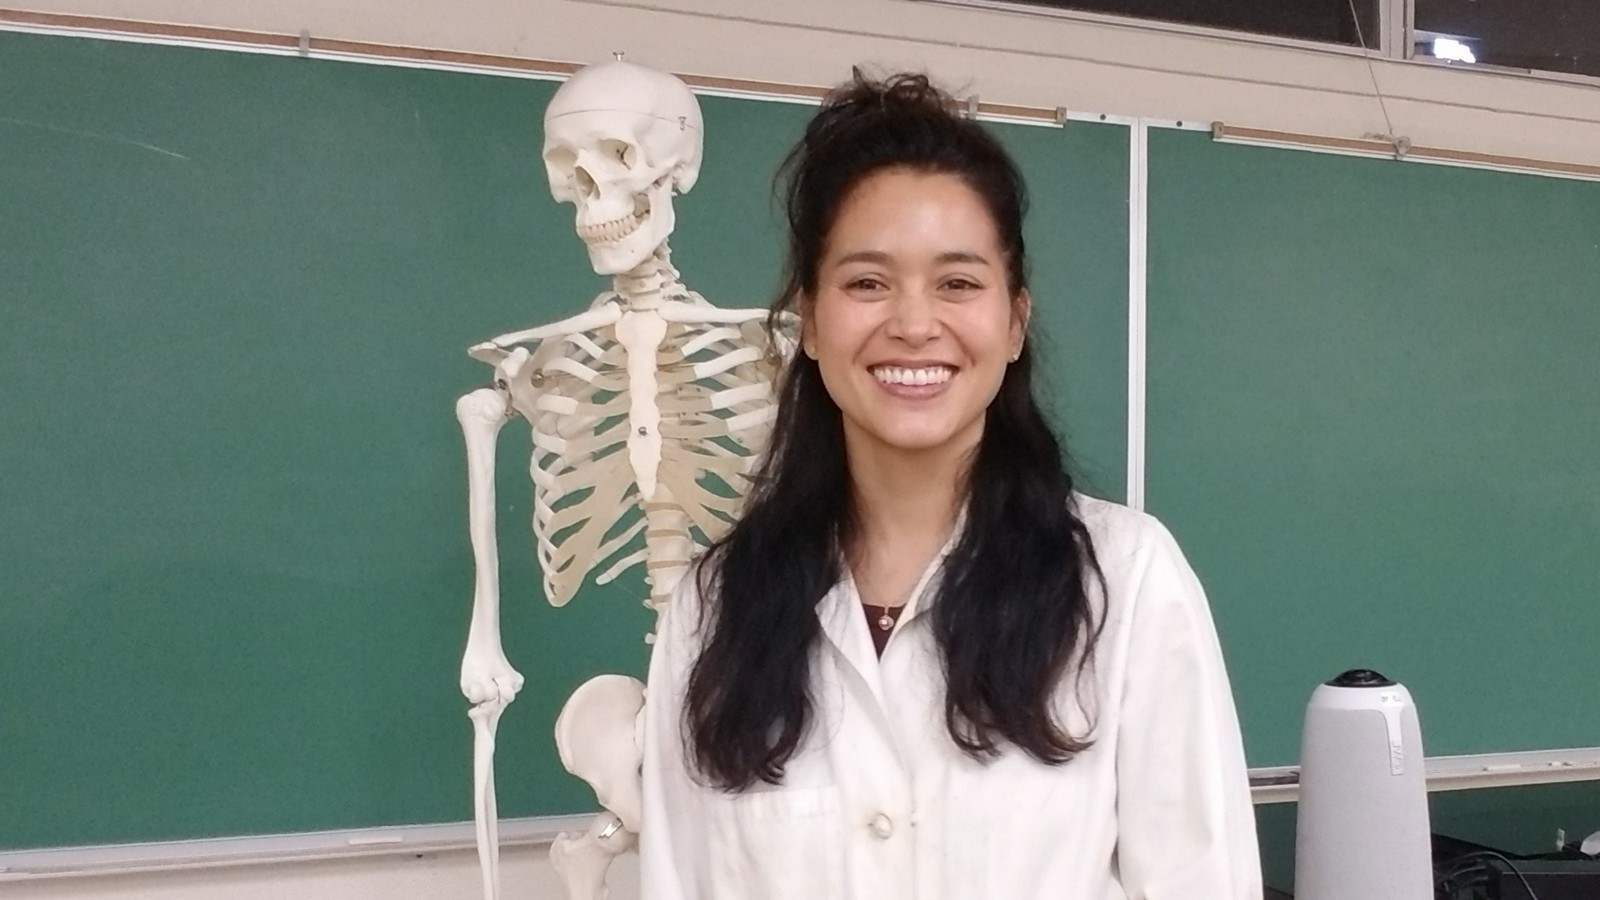 Jenni Guillen in classroom with skeleton over her right shoulder, blackboard in distance.